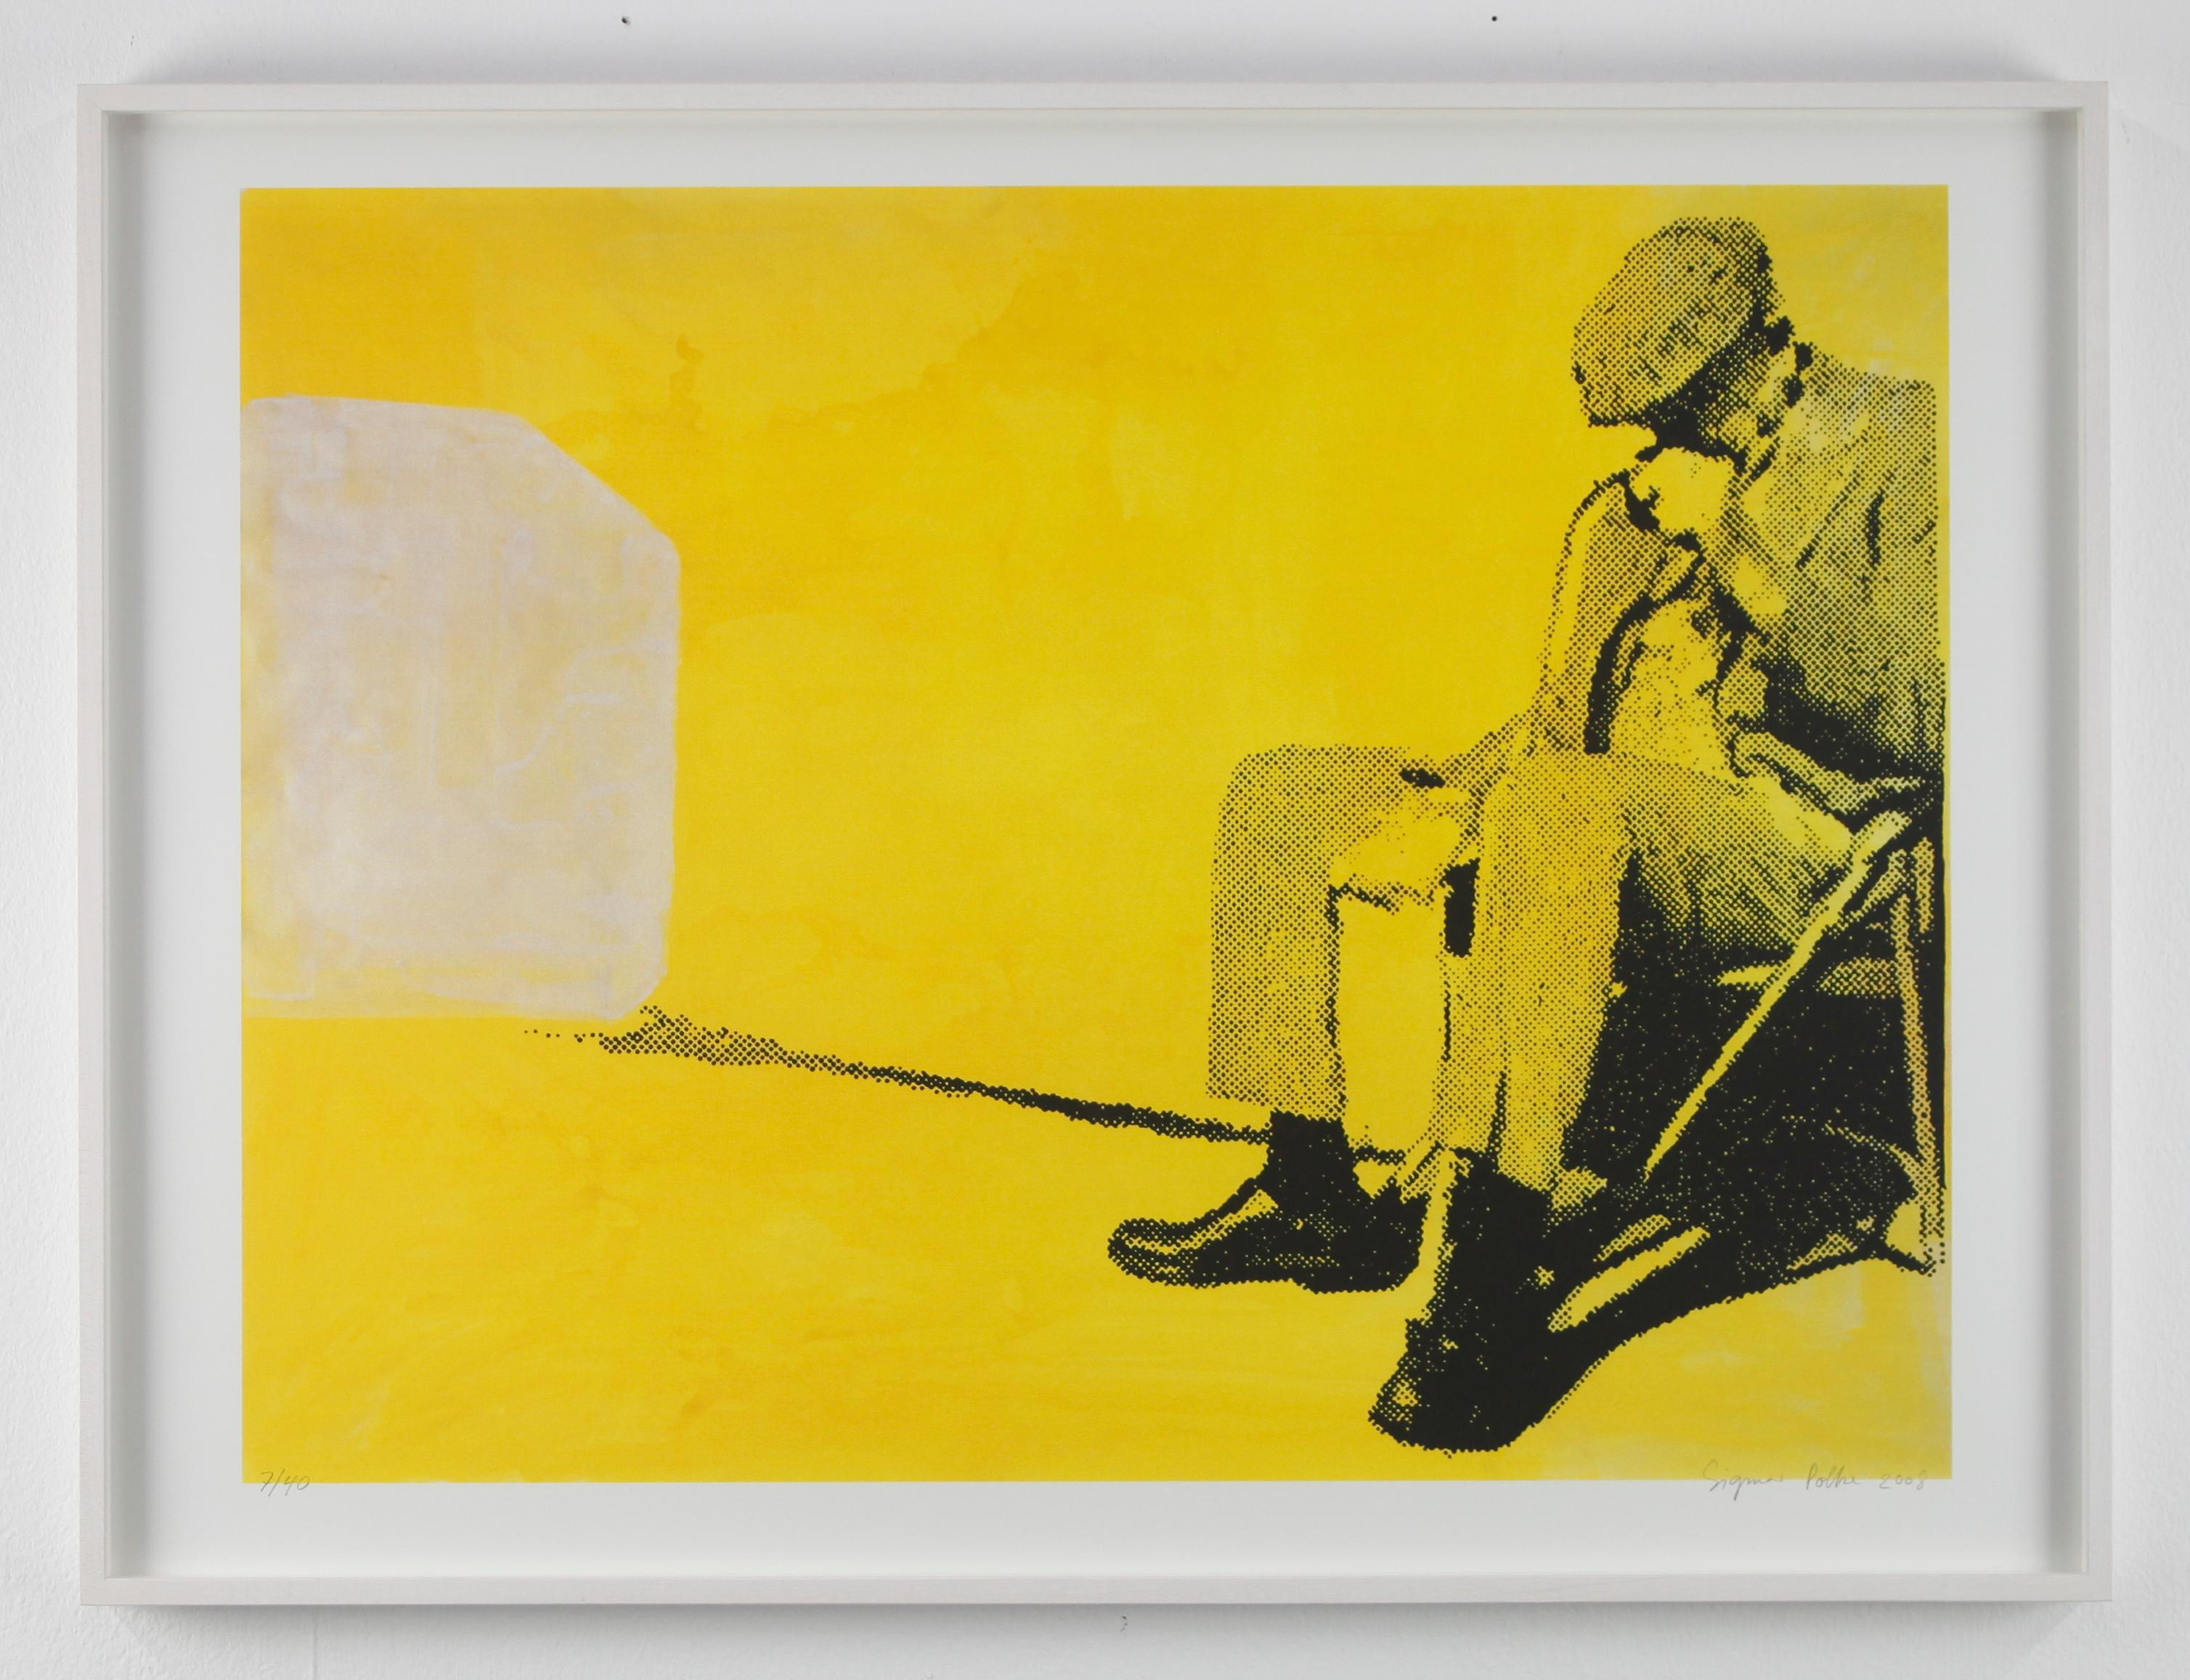 I got the blues / Screen-Print / signed and numbered by Polke / yellow / beggar